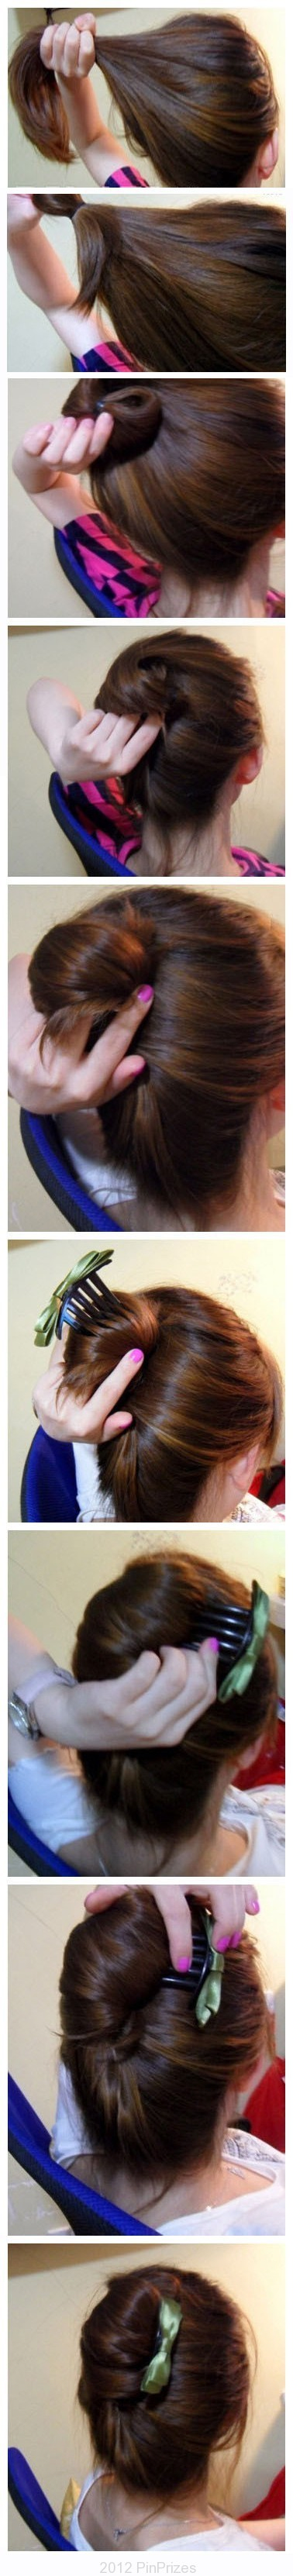 Hairstyle Tutorials (6)